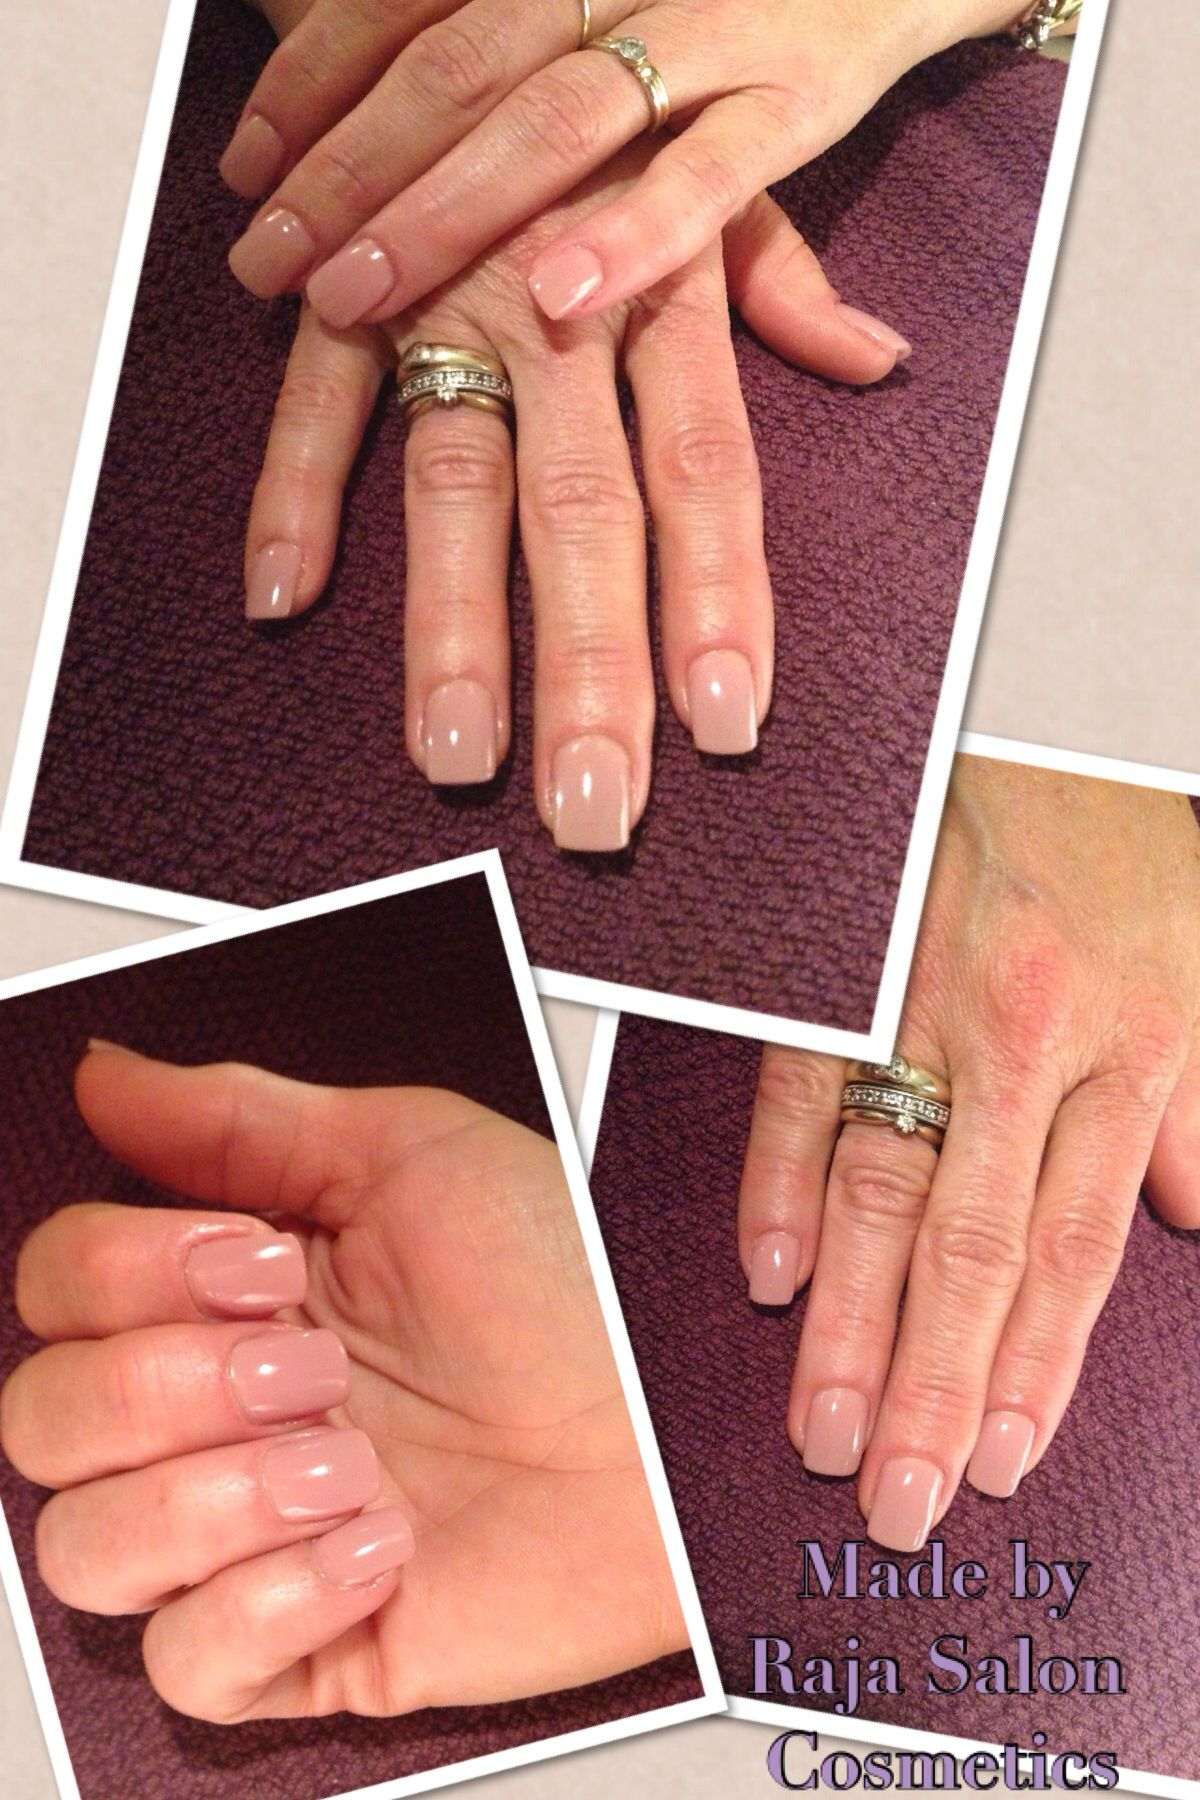 Young Nails Mani-Q Color Beige 102 Www.raja-saloncosmetics.nl